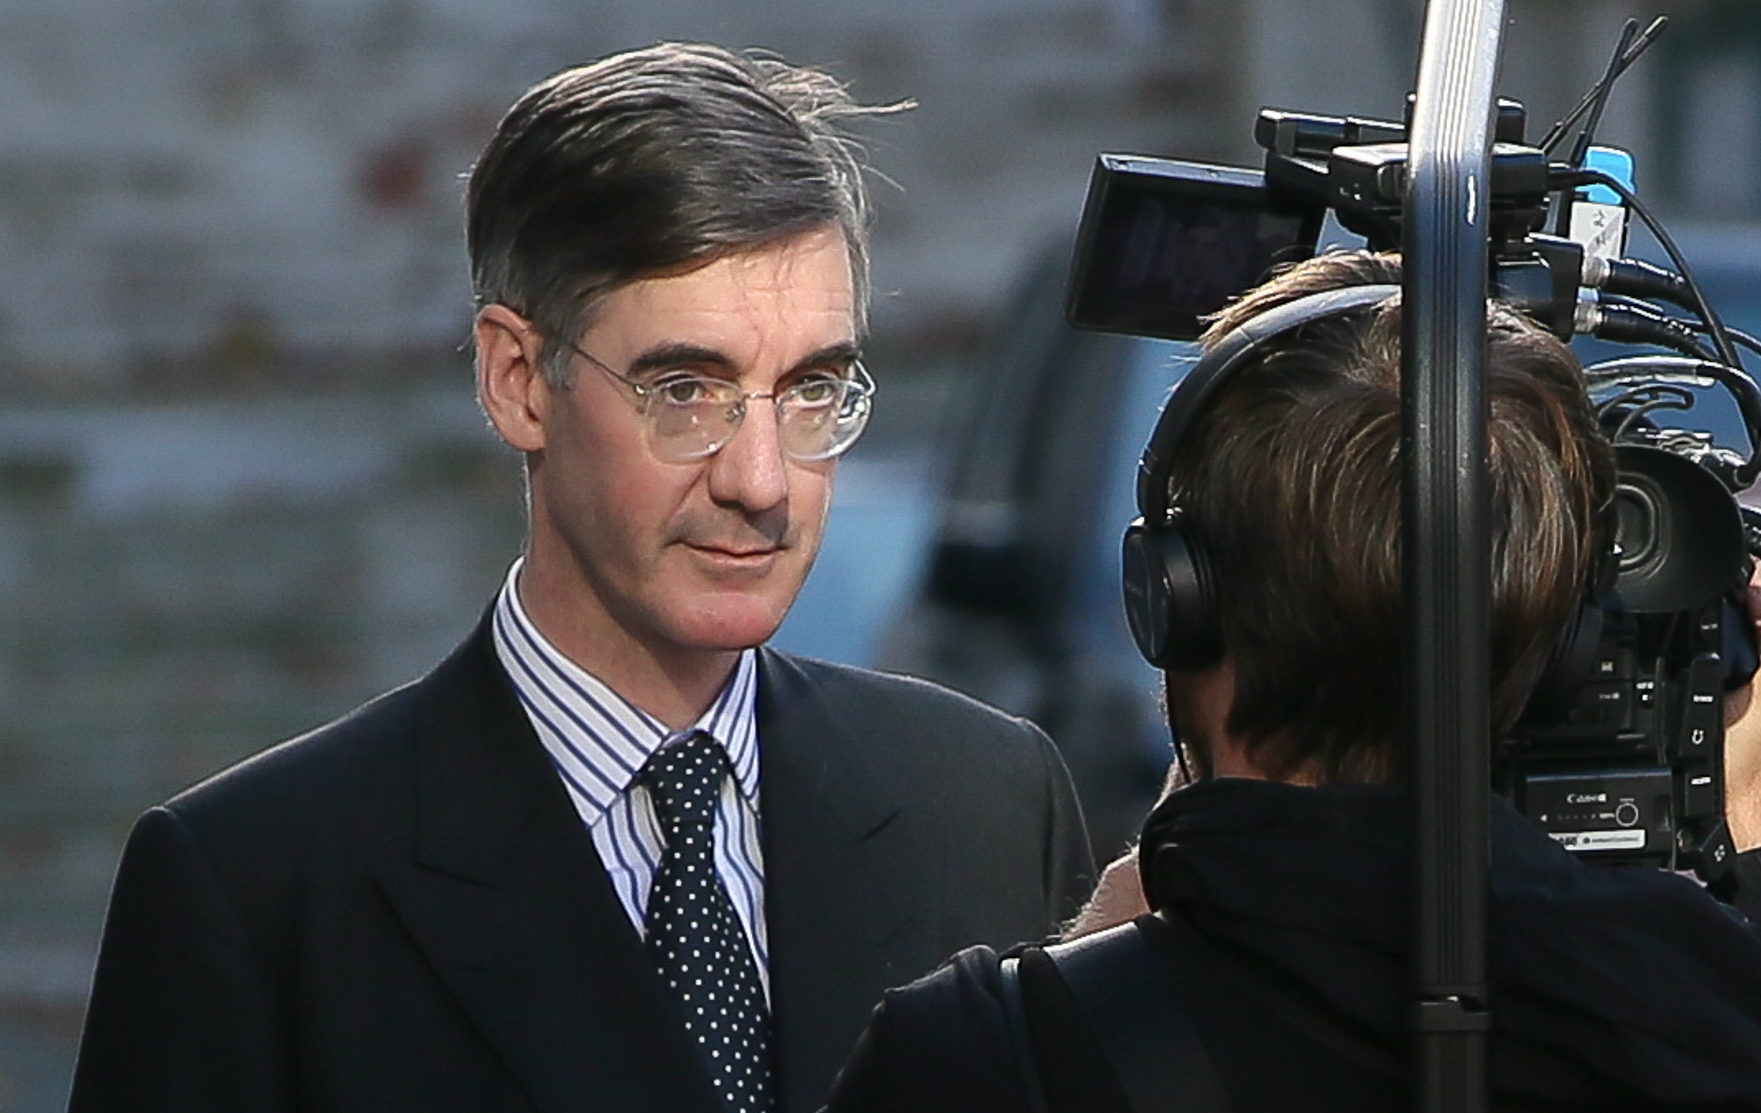 Jacob Rees-Mogg (Ian Lawrence X/Getty Images)